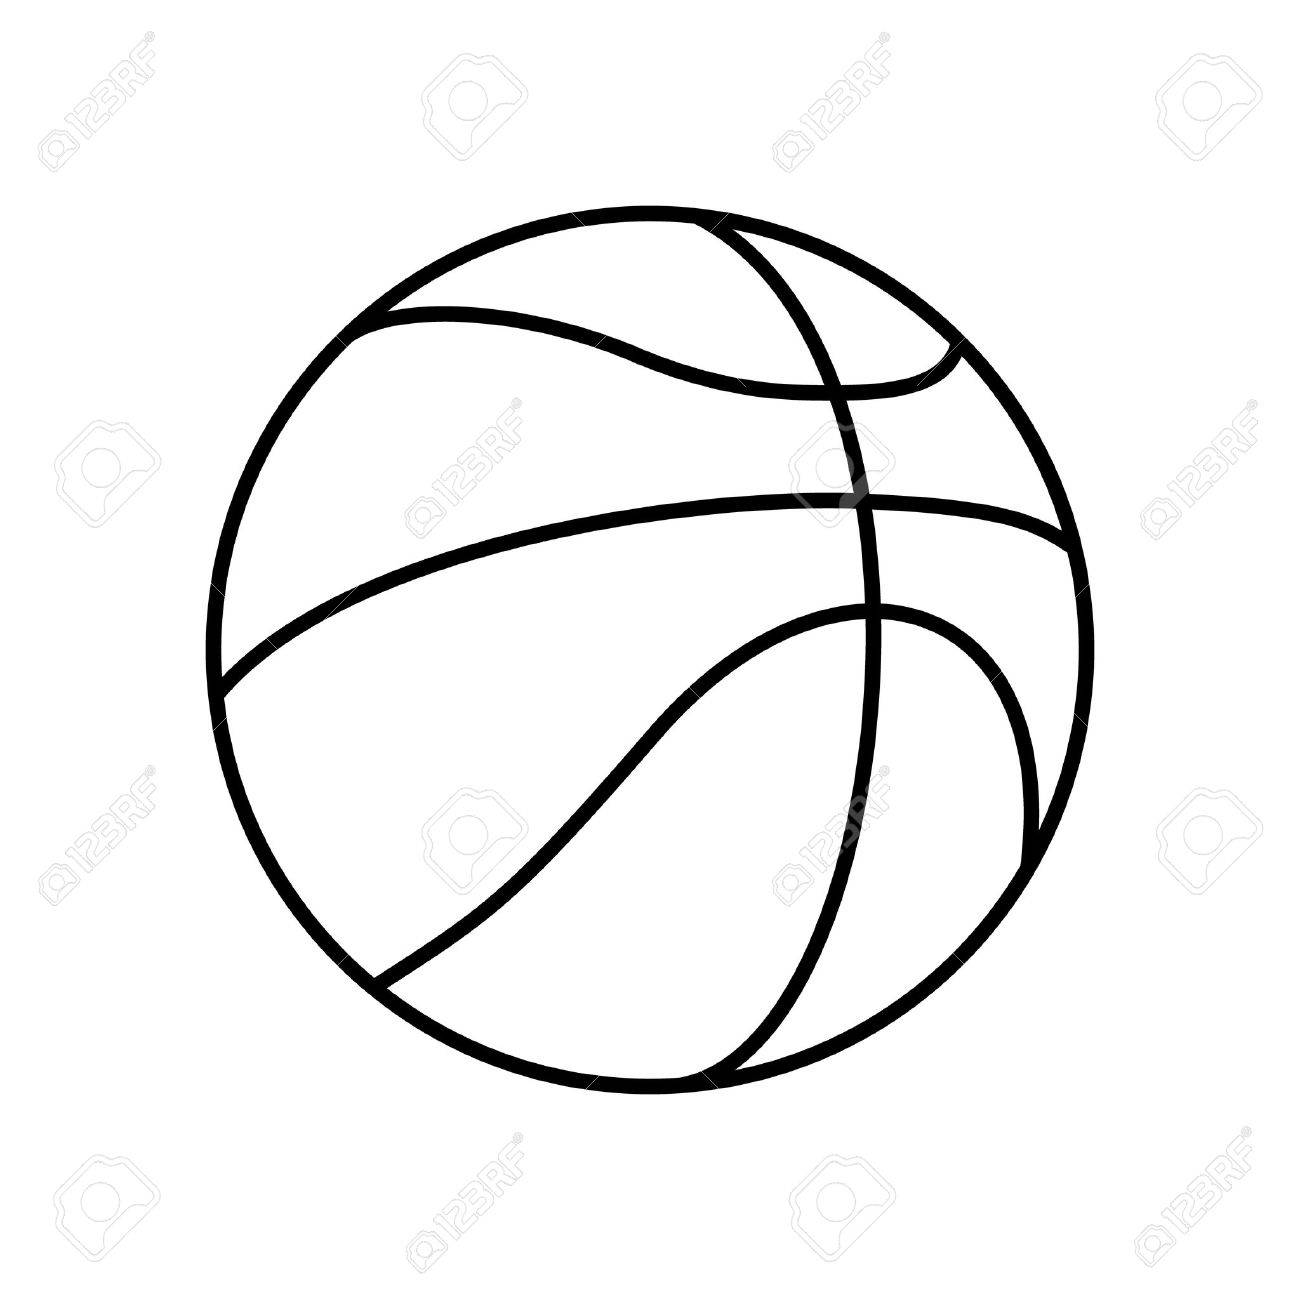 Black and White Basketball Ball Outline Vector Icon Isolated.